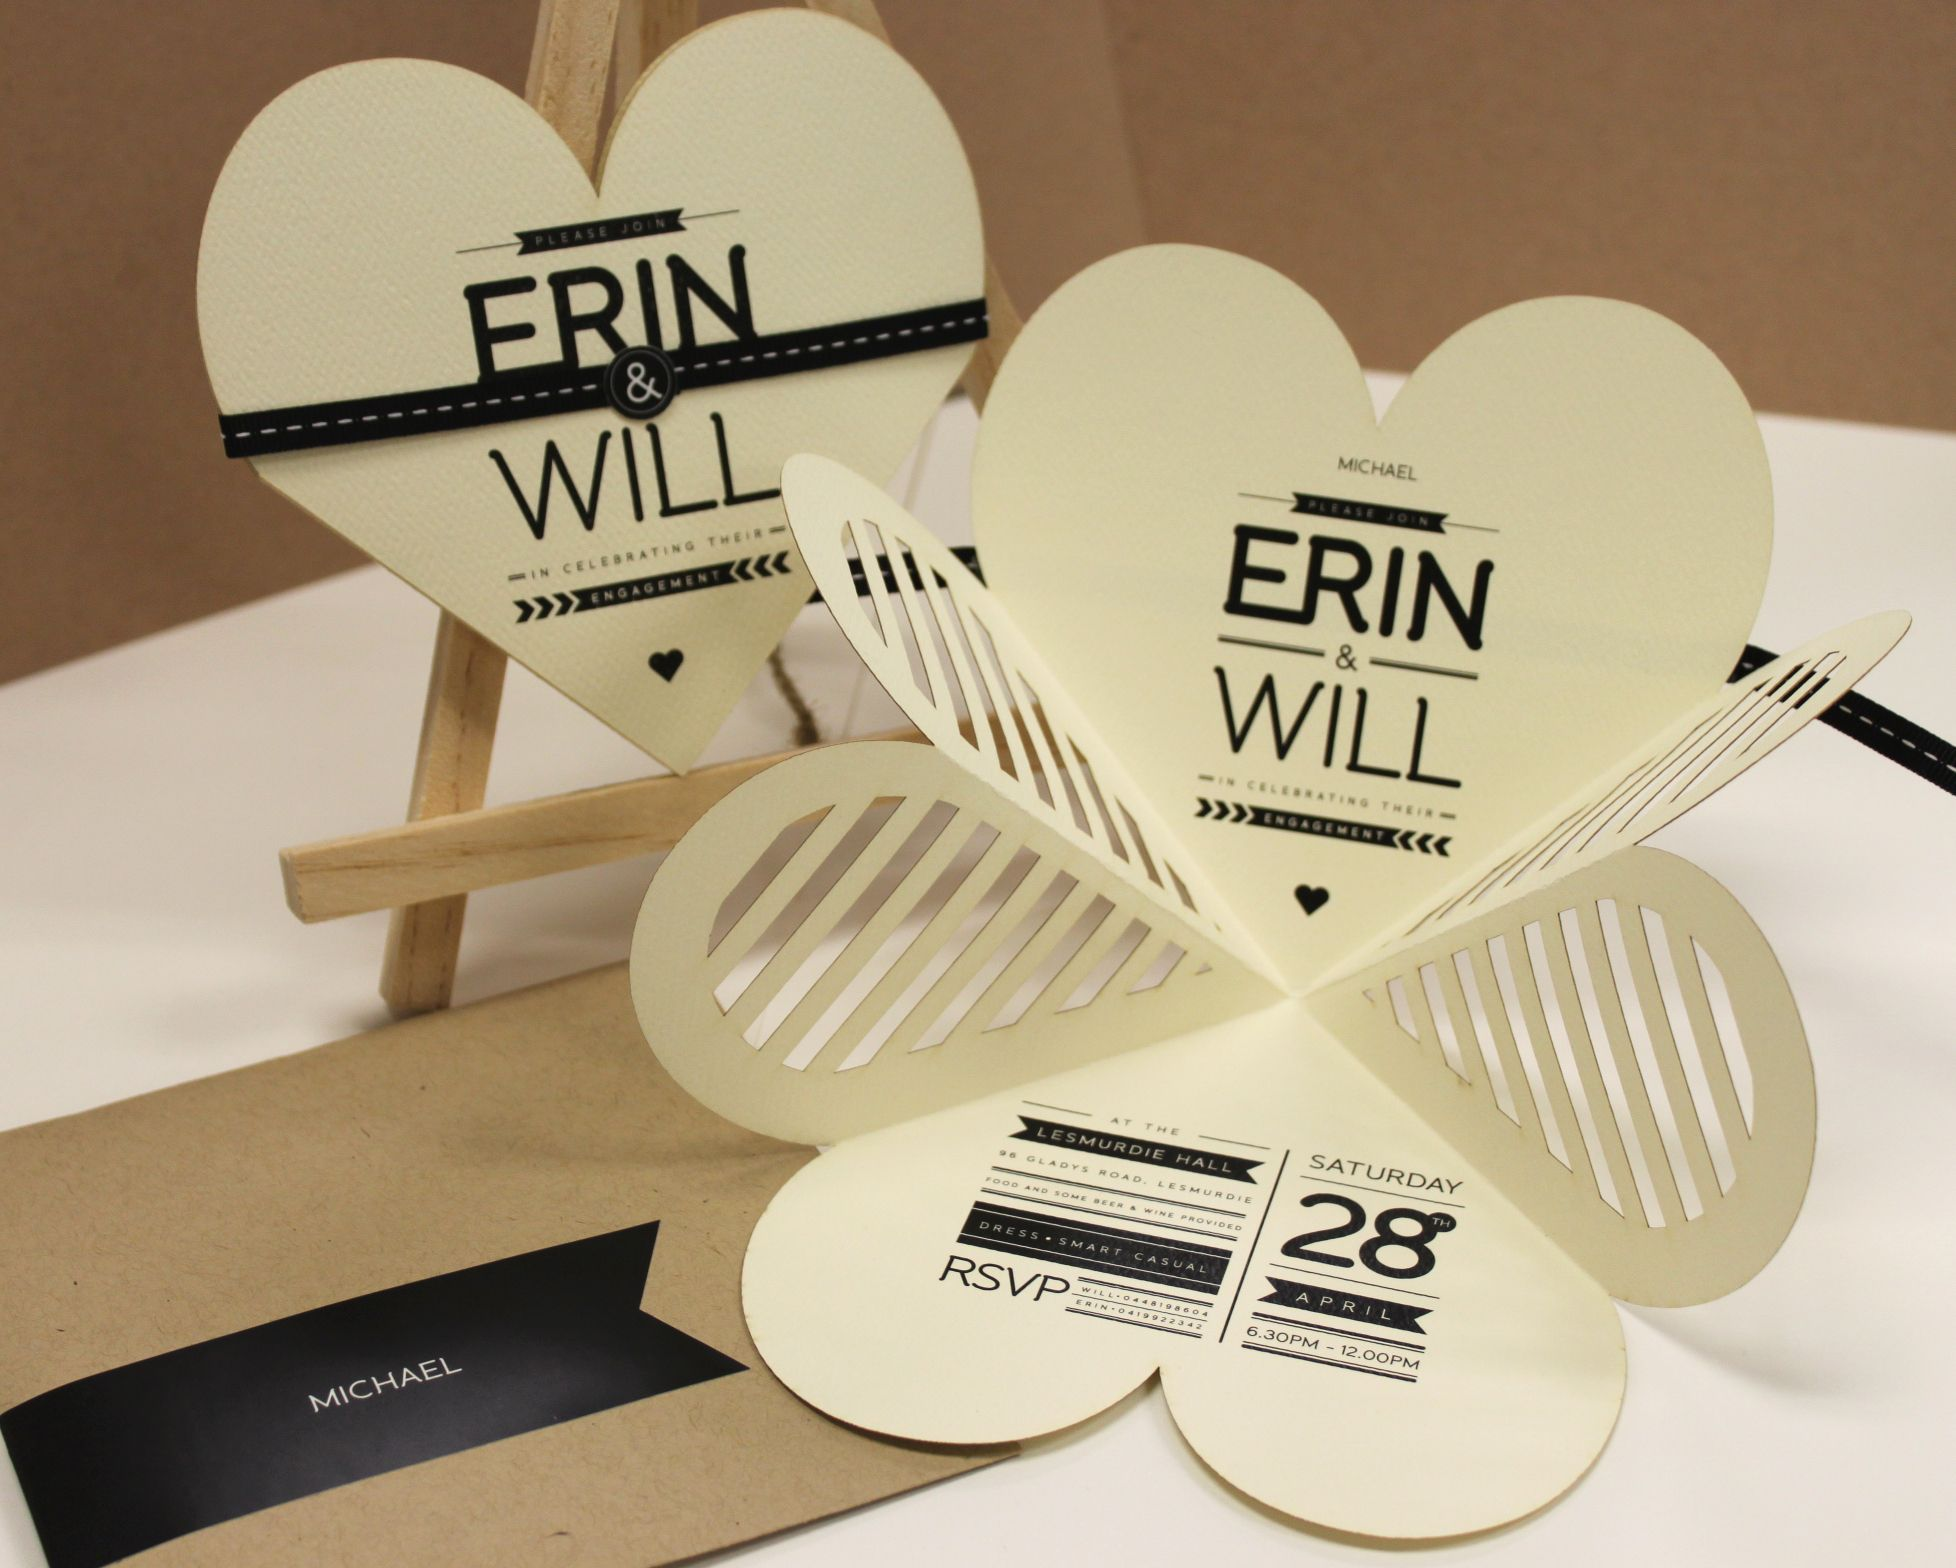 Heart Images For Wedding Invitations: Laser Cut Engagement Invitation Folds From A Clover Shape